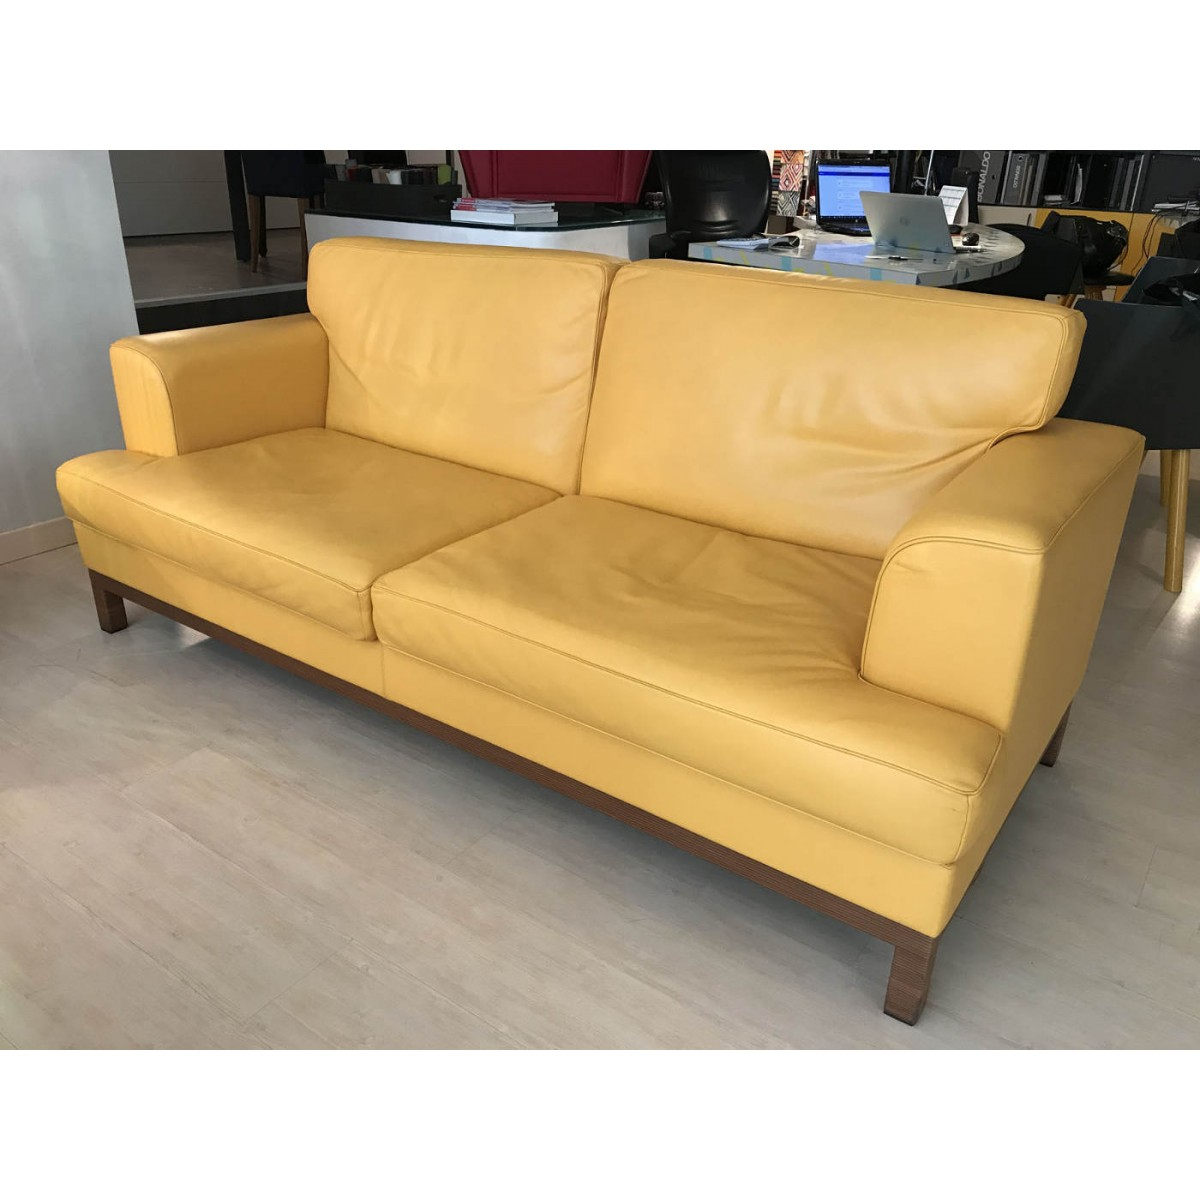 Poltrona frau piazzagrande sofa outlet for Divano poltrona